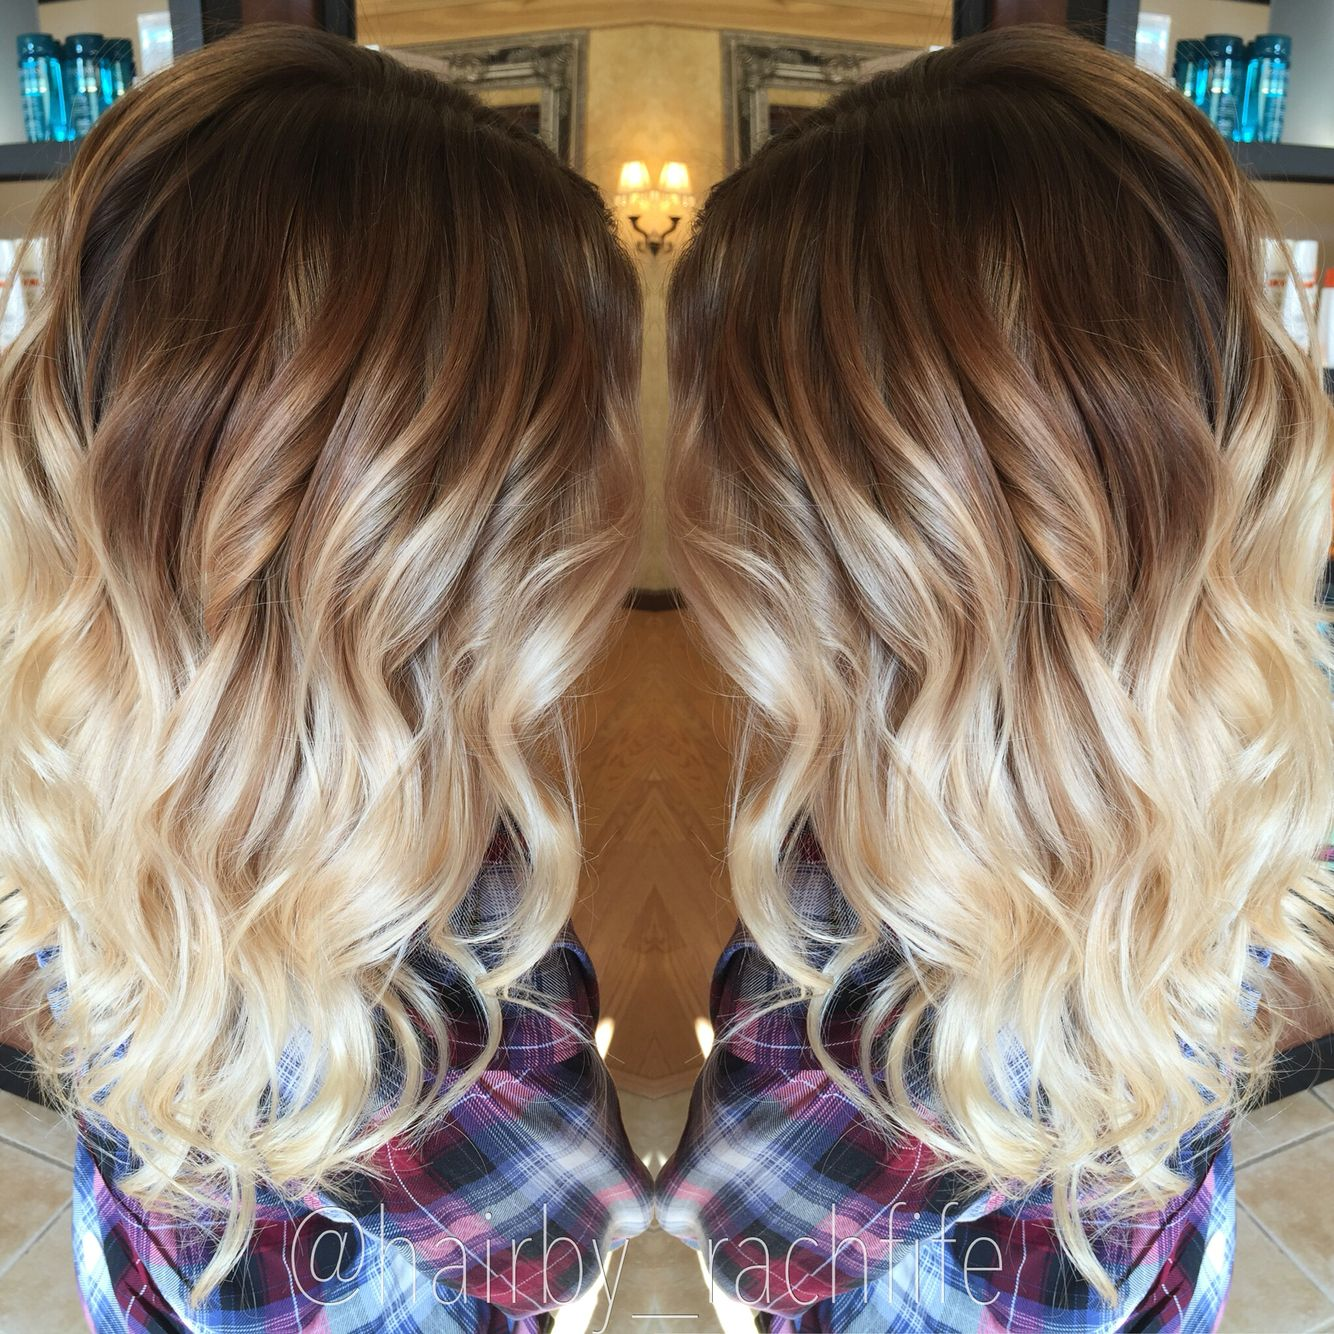 Custom color blonde colormelt ombre hair by Rachel Fife @ SF Salon ...